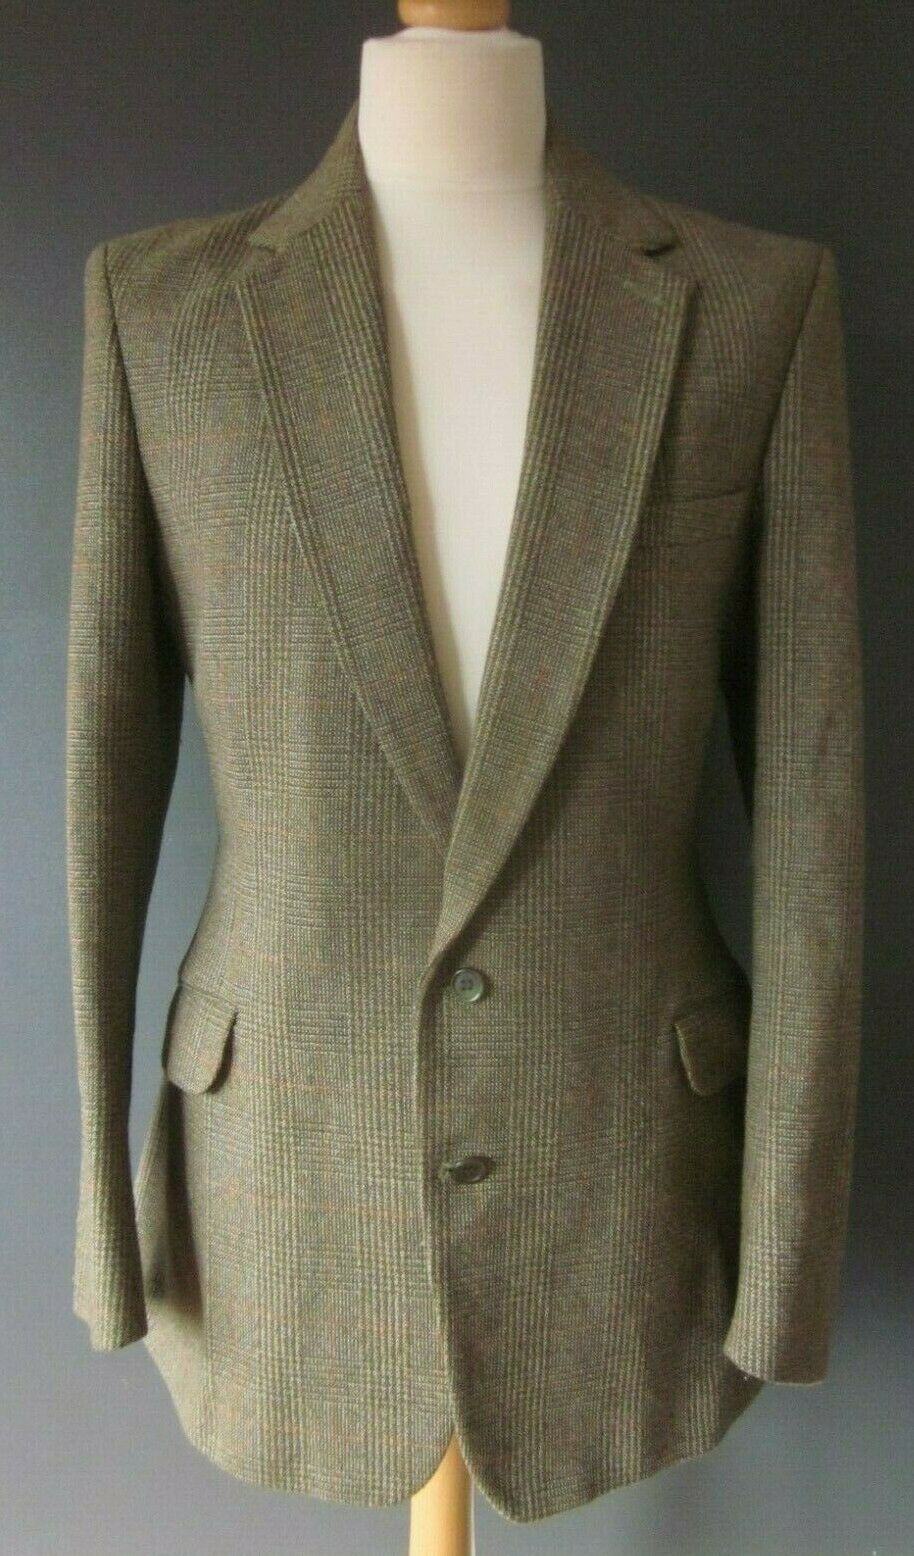 Vintage JOHN BROCKLEHURST TWEED BLAZER (40) Cuadros Lana de disparo GOODWOOD Fawn